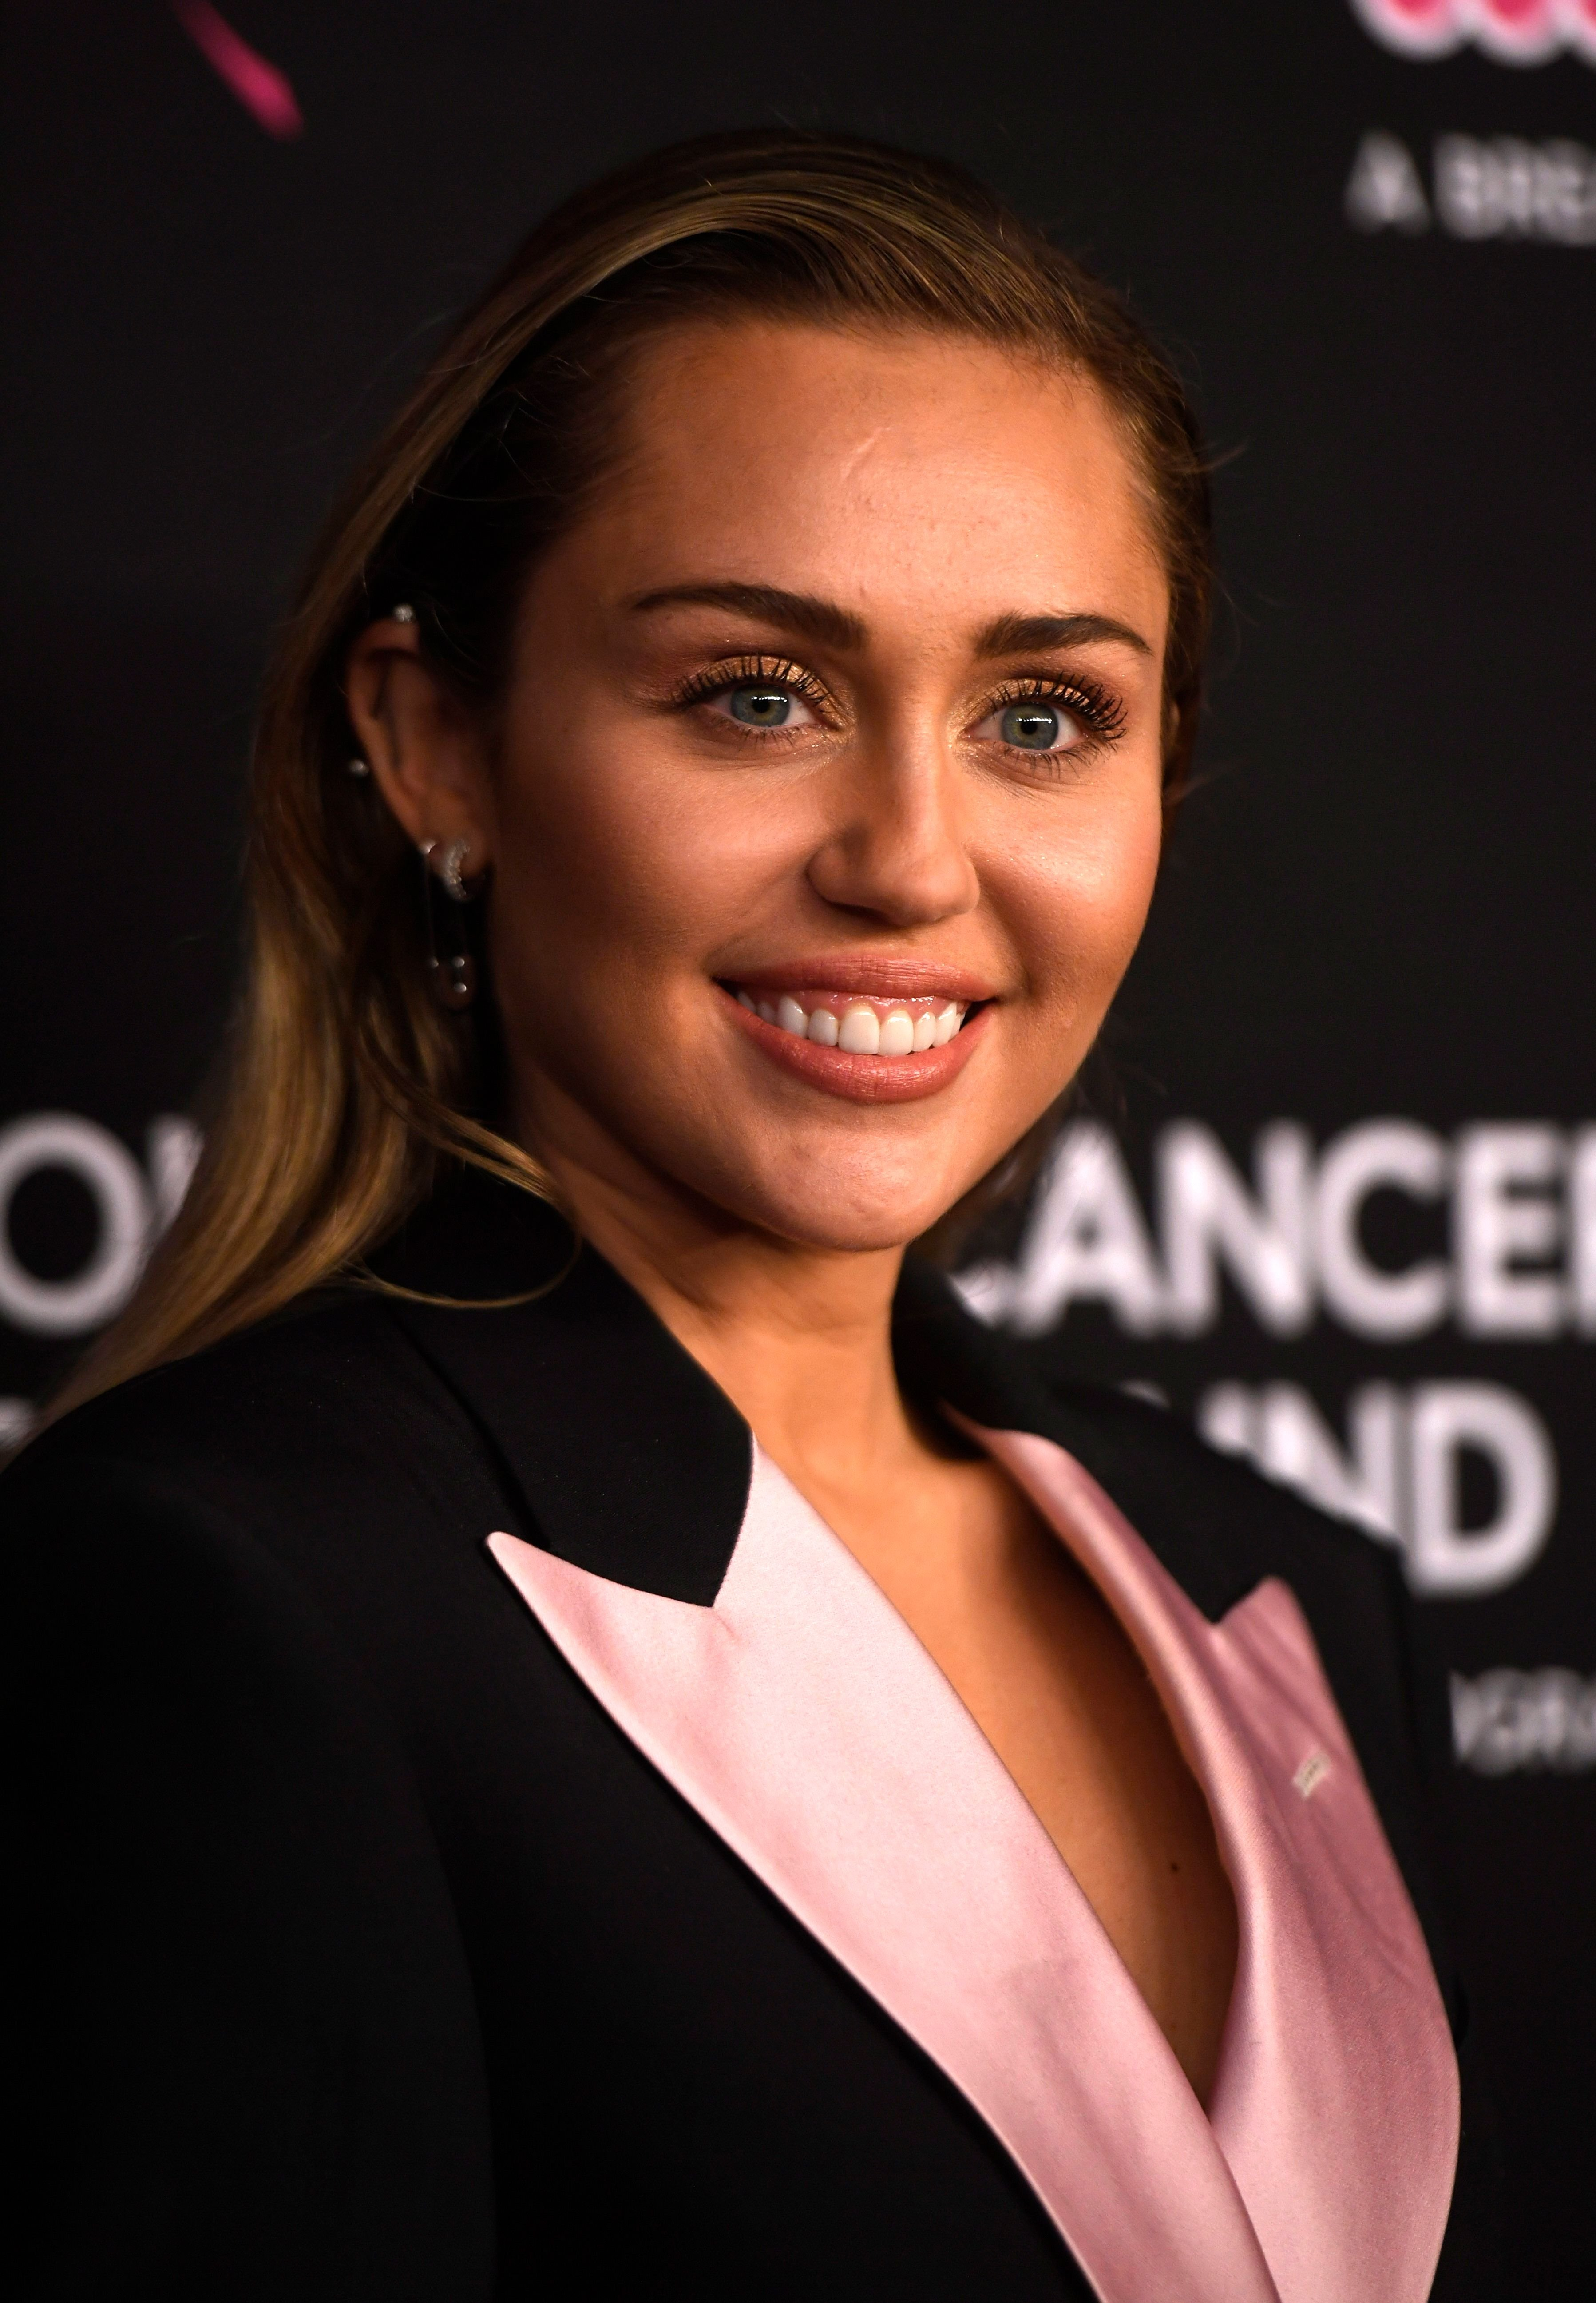 Miley Cyrus at The Women's Cancer Research Fund's An Unforgettable Evening Benefit Gala at the Beverly Wilshire Four Seasons Hotel on February 28, 2019 in Beverly Hills, California | Photo: Getty Images